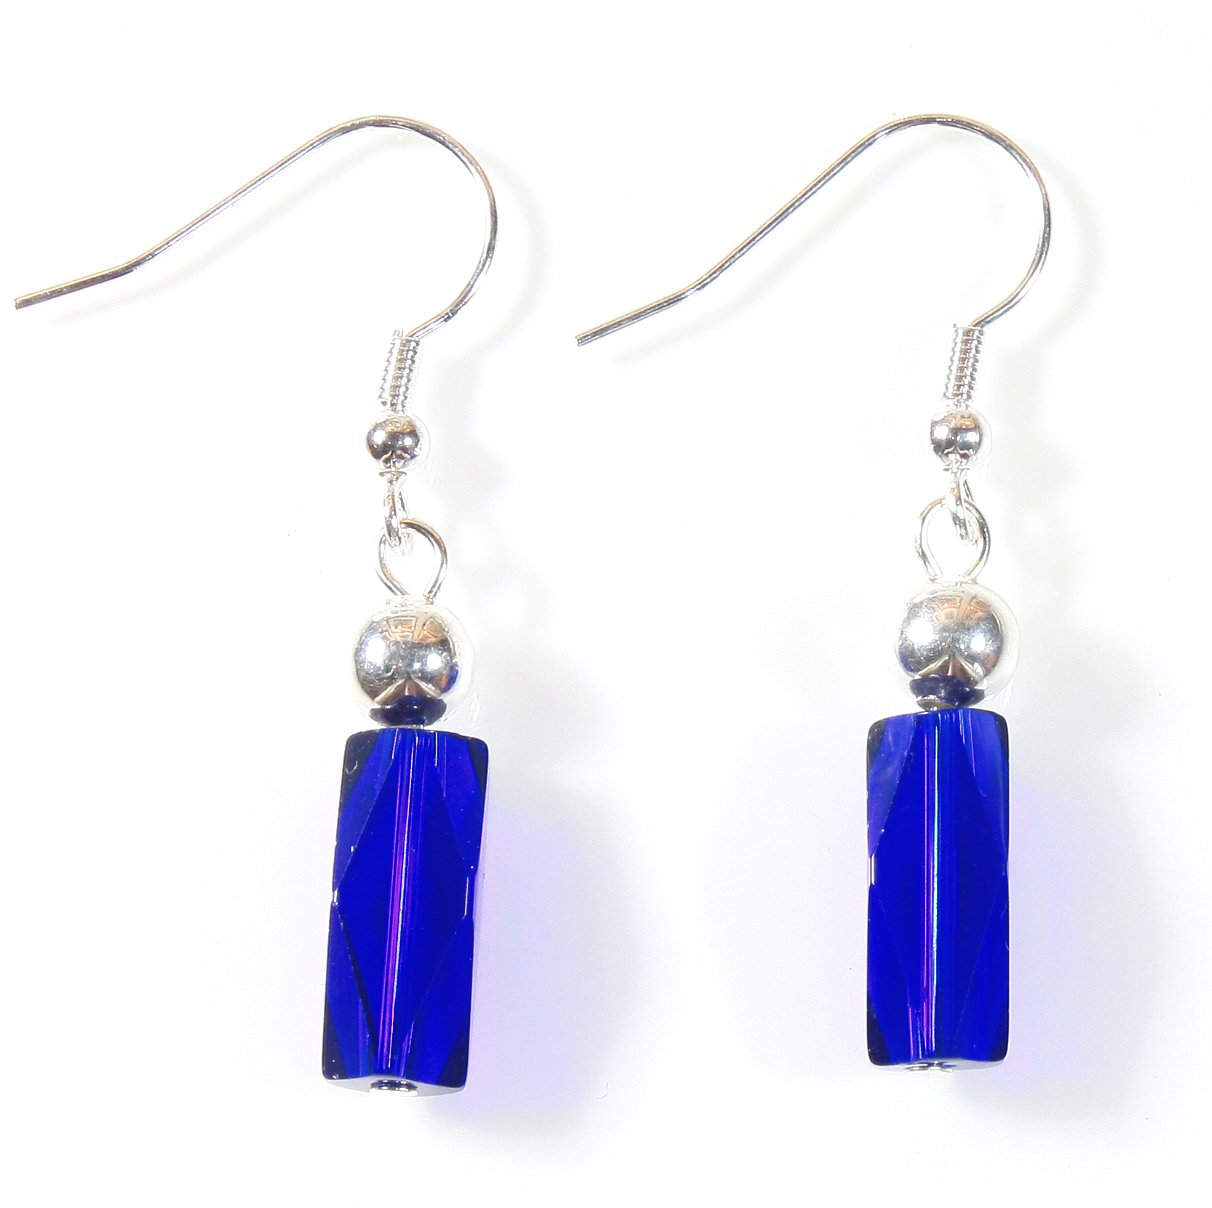 ''Spark of Joy Earrings'' Cobalt Blue and Silvertone on Tarnish Resistant French Wires by Style-ARThouse (Image #1)